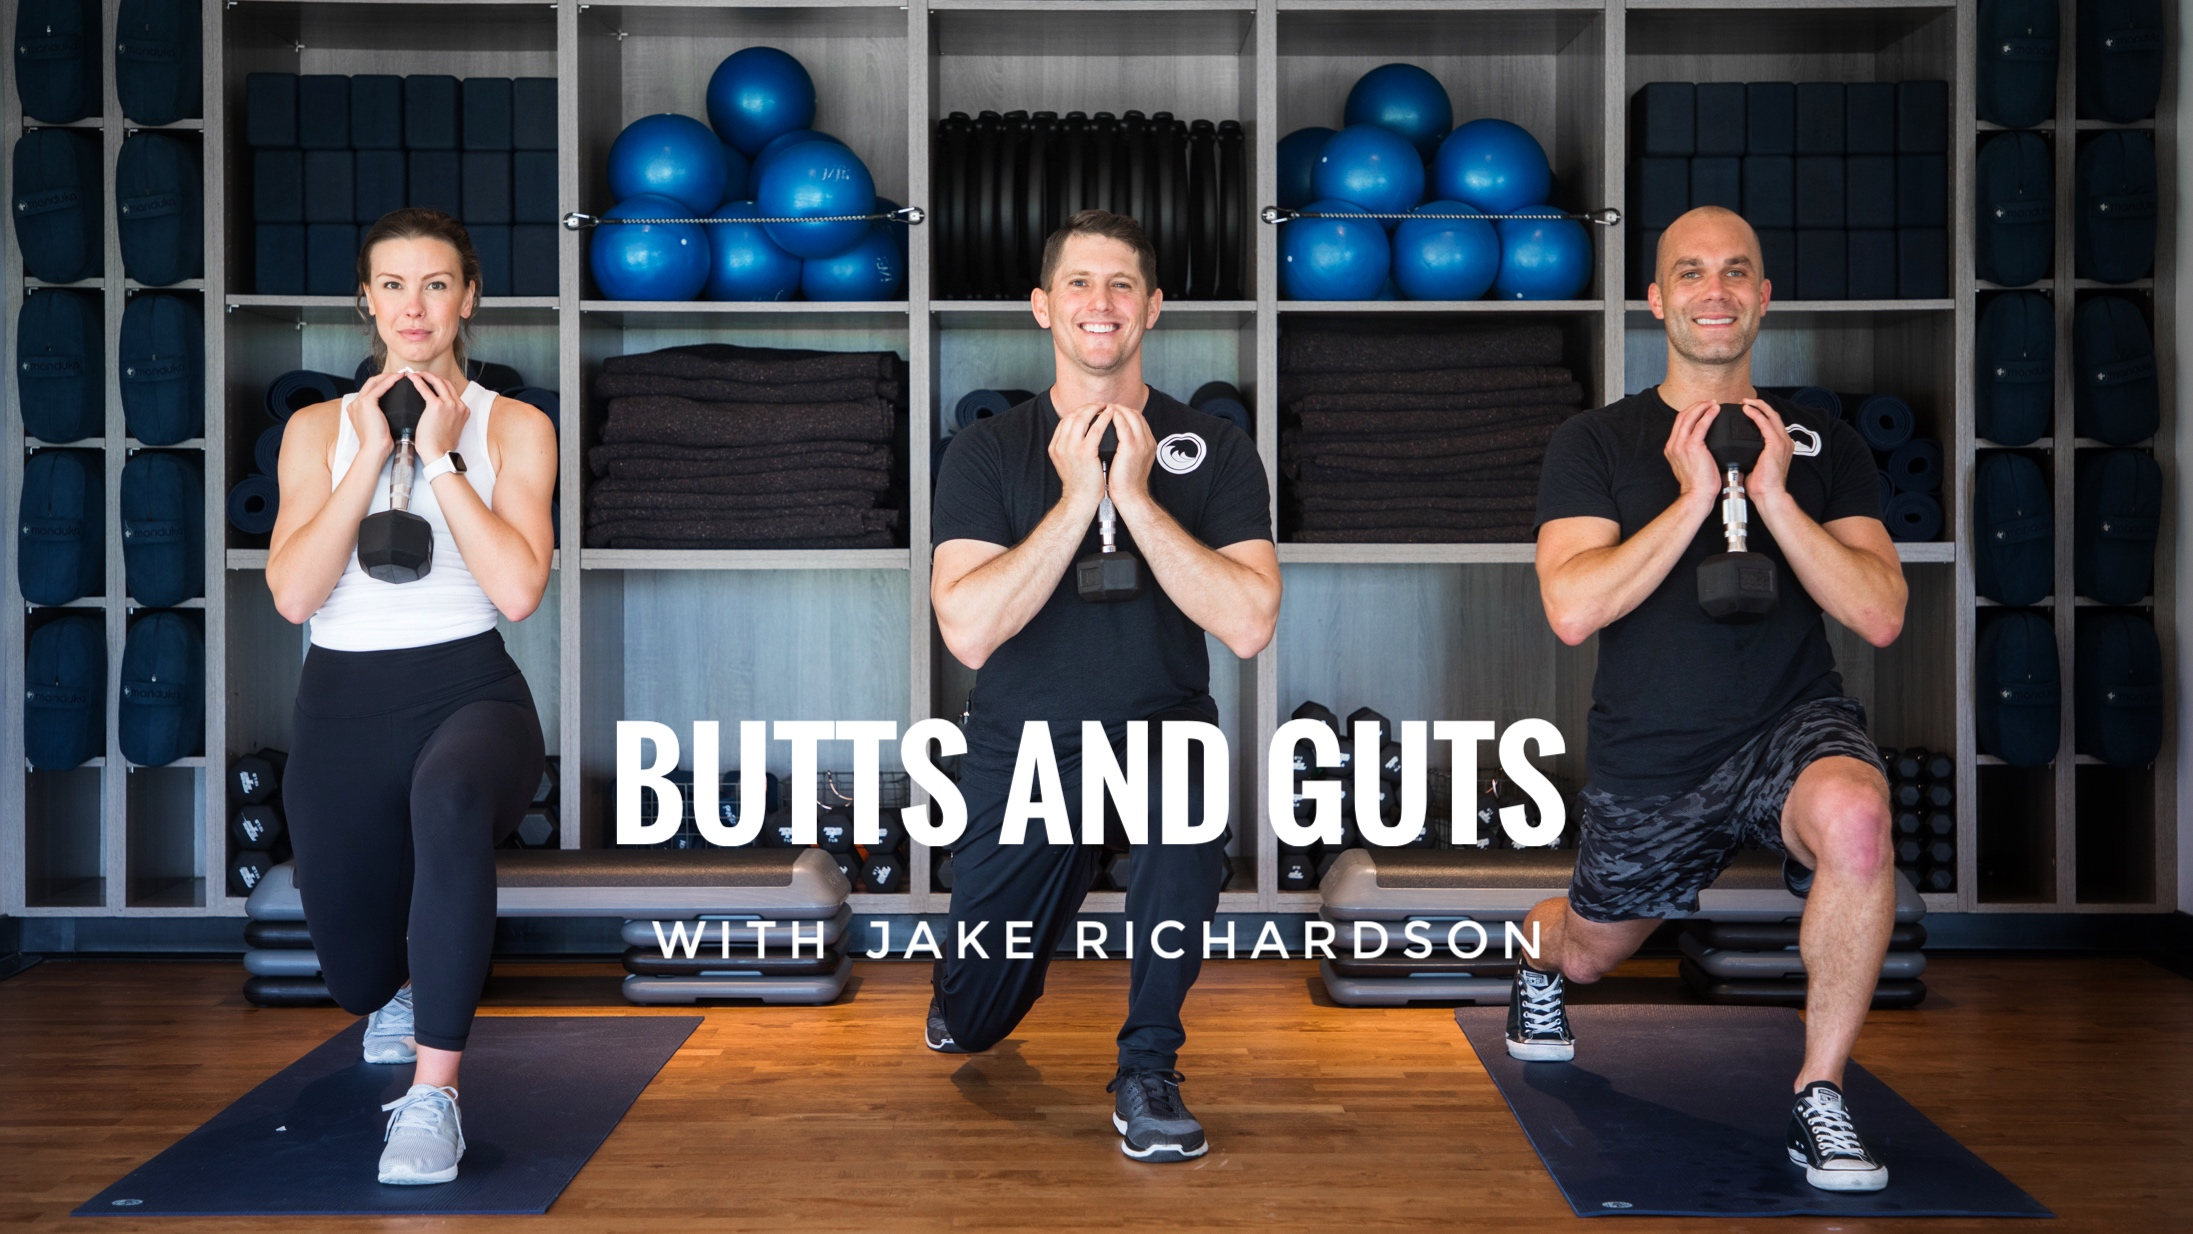 Butts and Guts with Jake Richardson